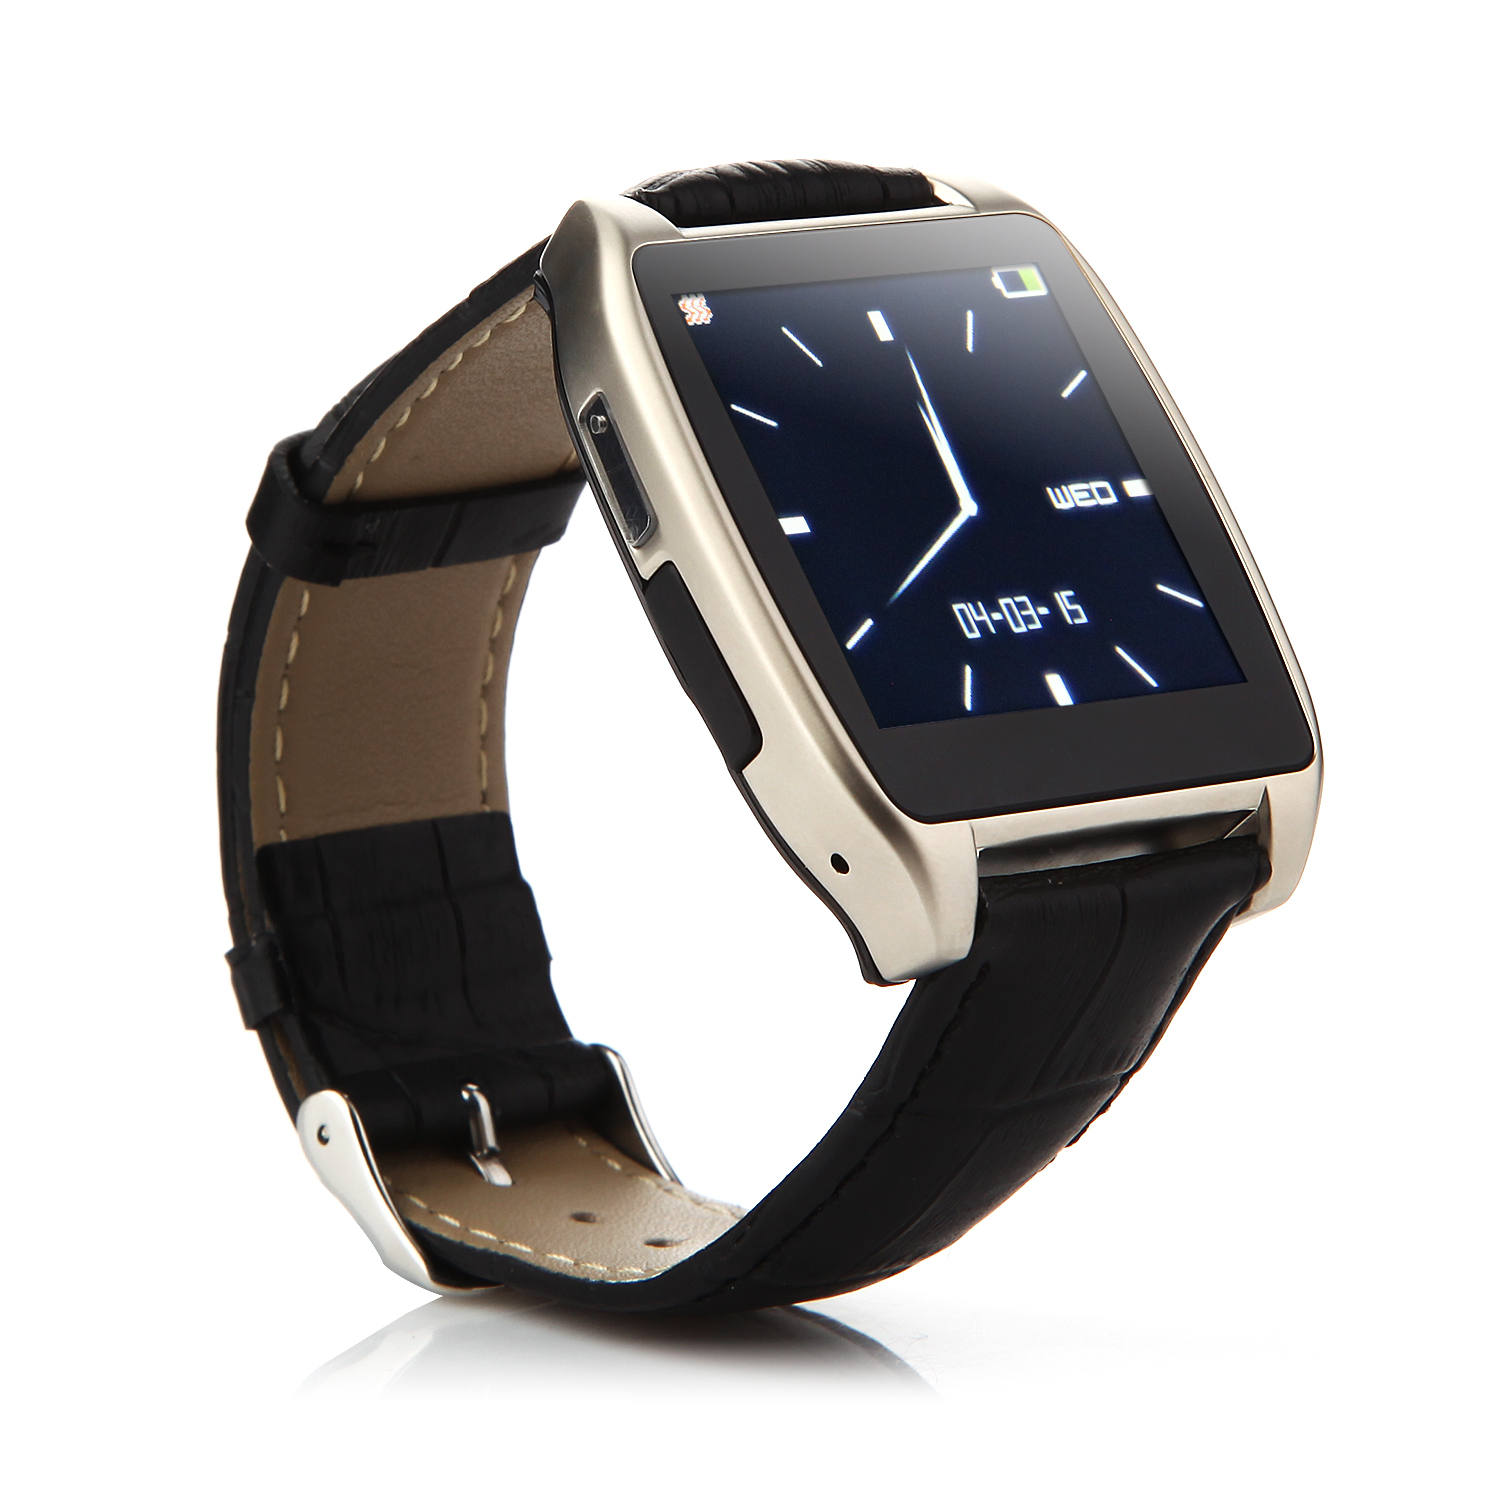 RWATCH R7 Bluetooth Smart Remote Control Watch for iOS Android Smartphones Champagne